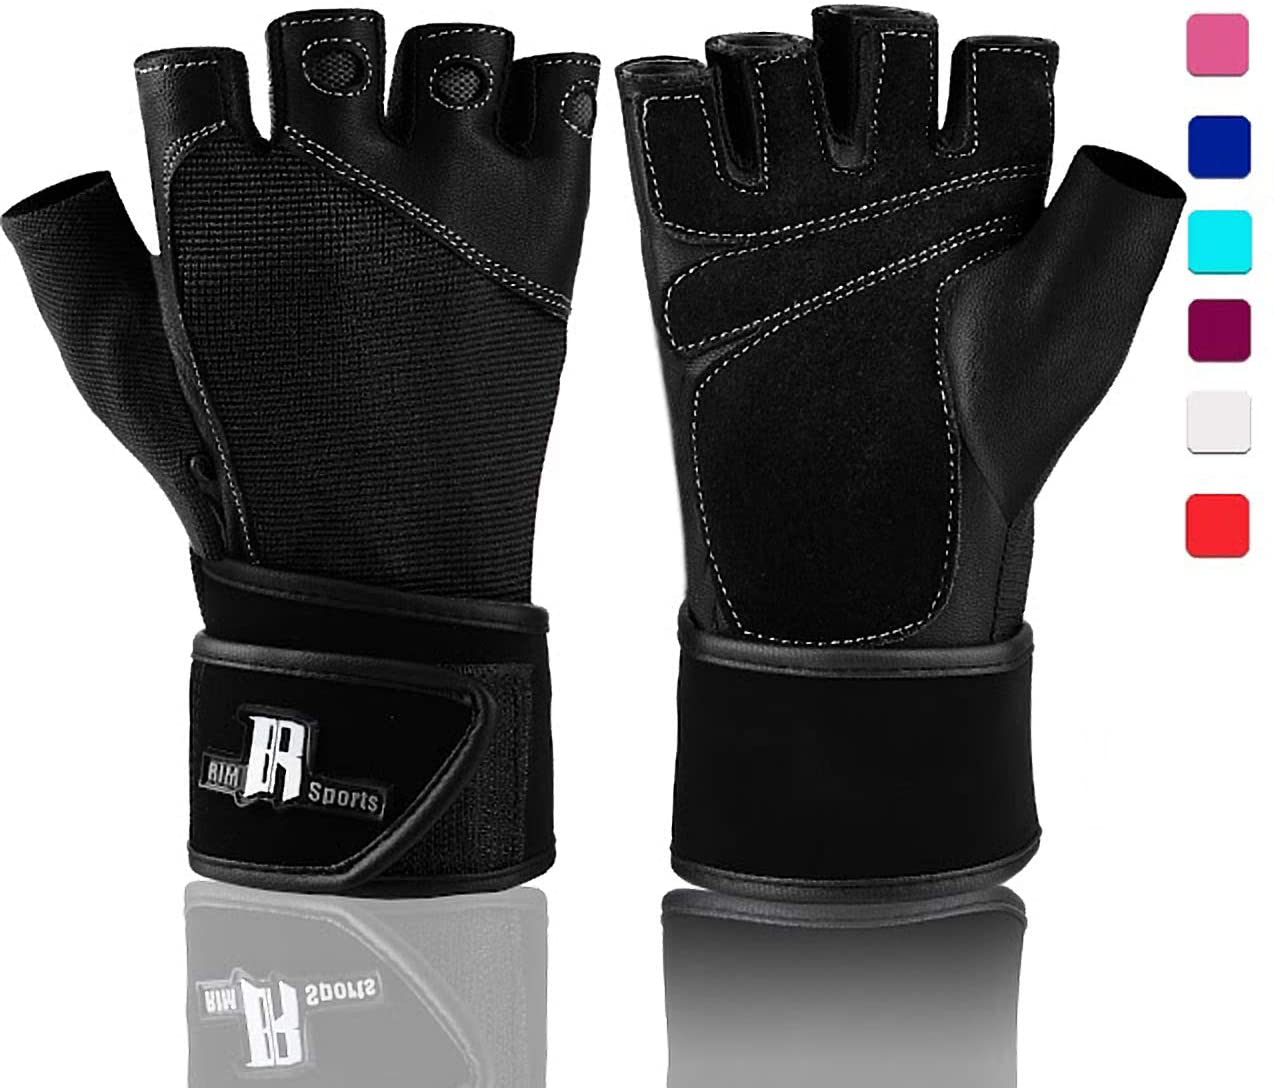 Fitness and Strength Training Full Palm and Wrist Protection to Prevent Hand and Wrist Calluses New Workout Glove with Wrist Wrap for Weight